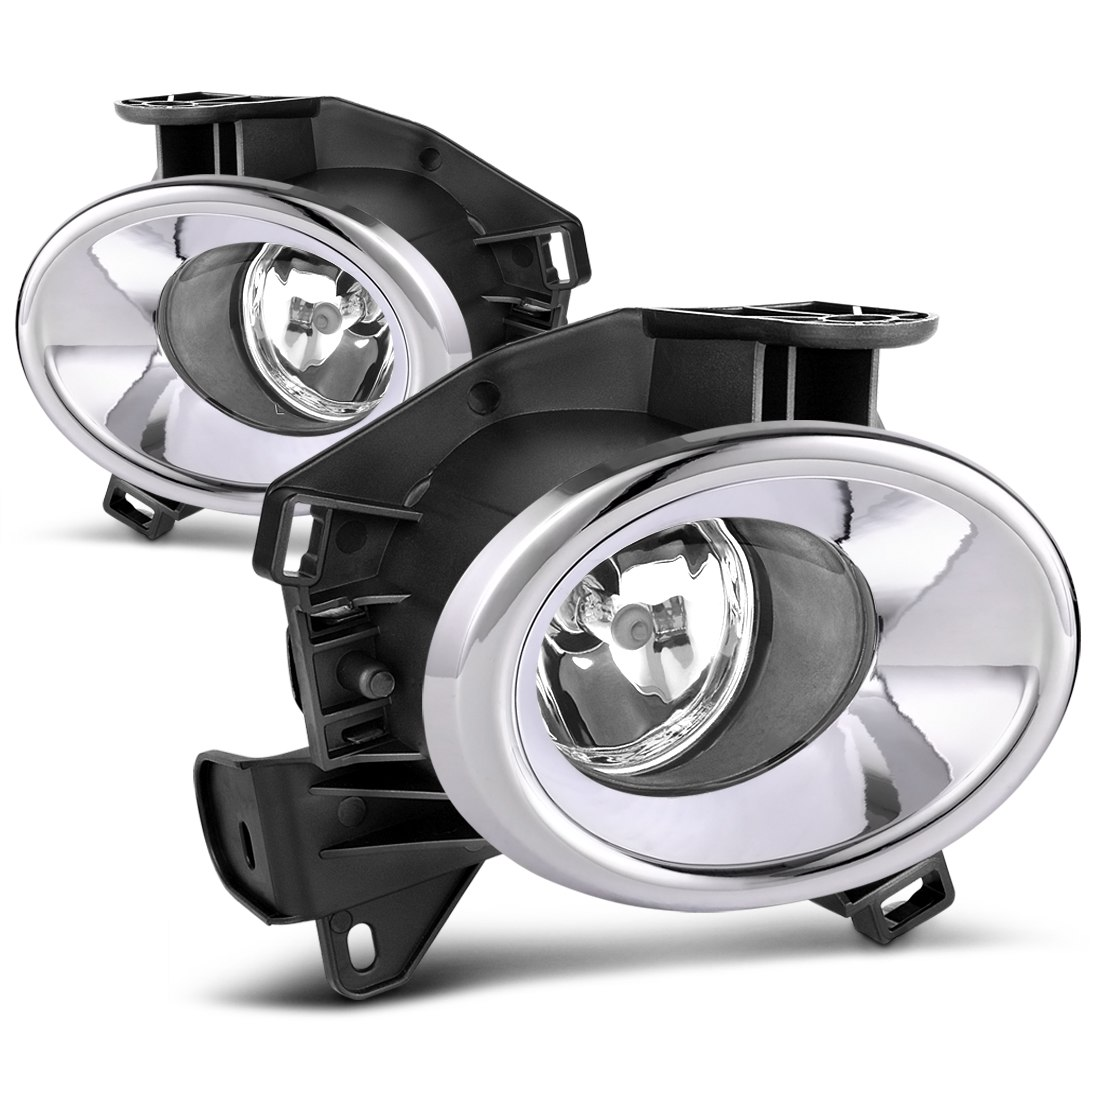 factory style chrome fog lights for nissan pathfinder 2013 2014 2015 2016 (clear lens with bulbs \u0026 wiring harness) Dodge Ram 1500 Fog Light Wiring